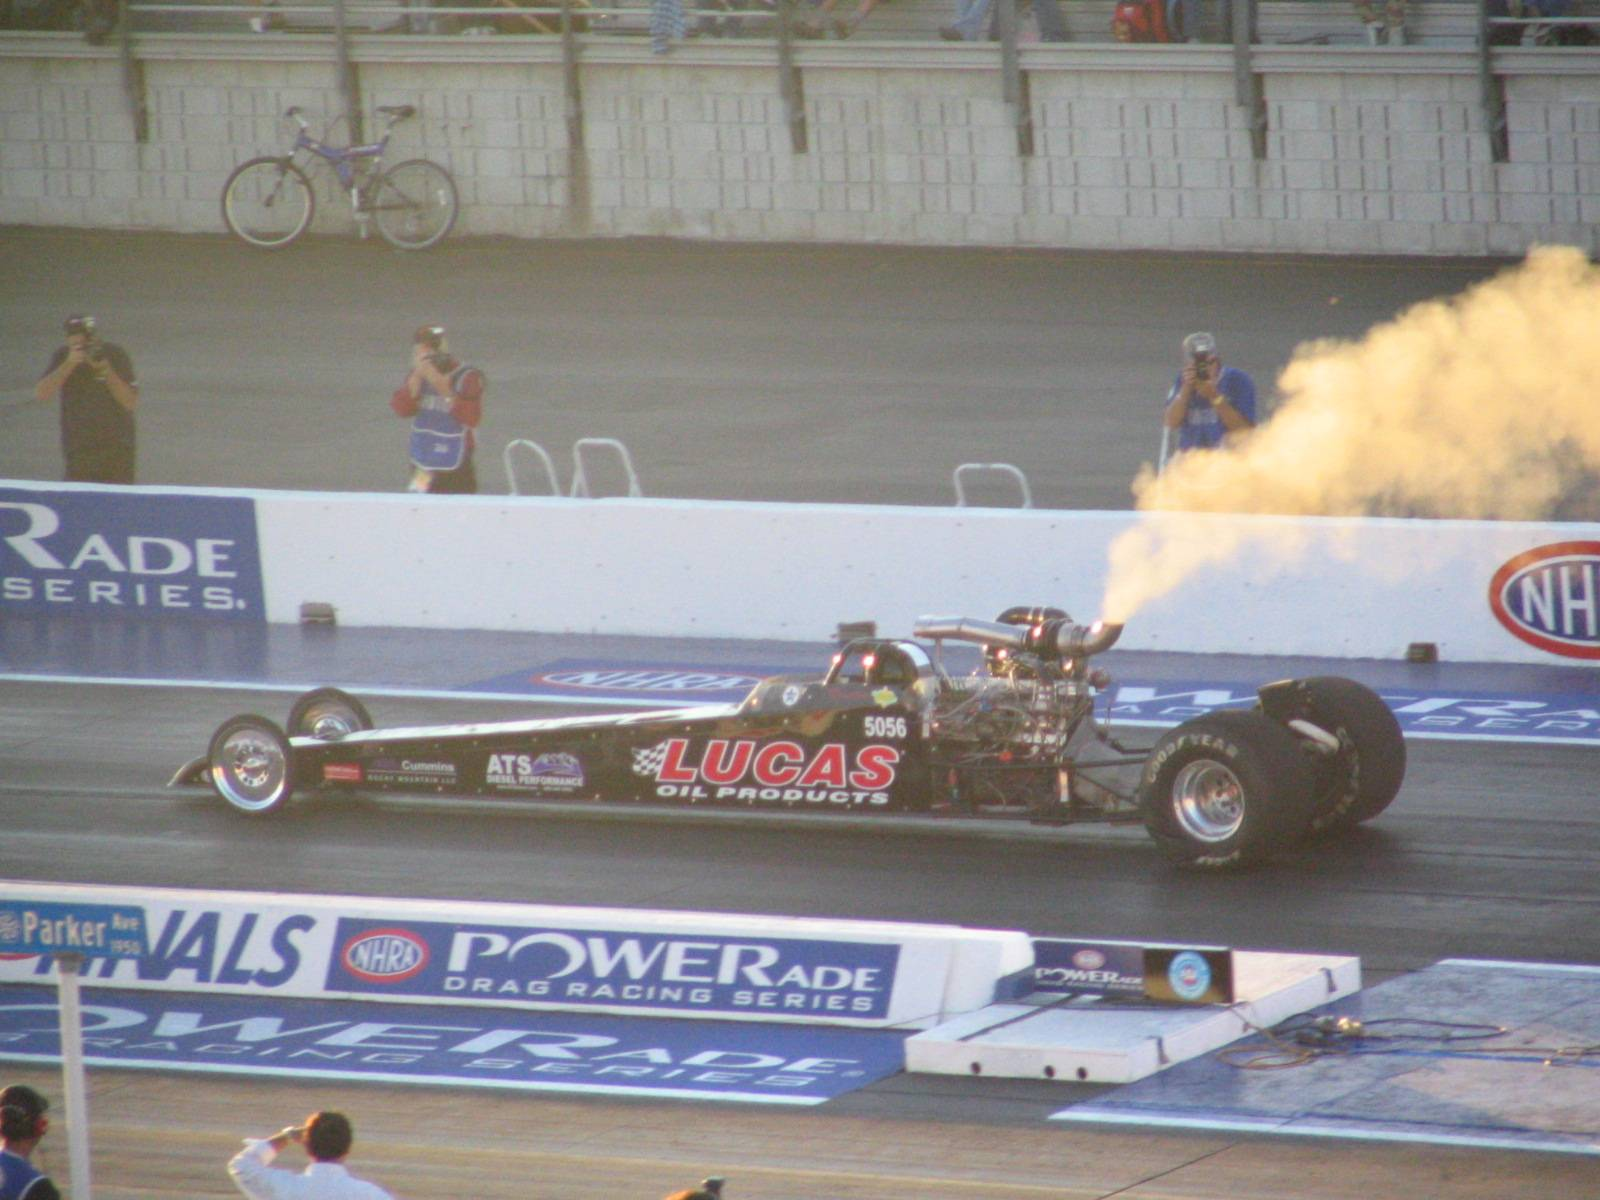 2002 Dragster Rear Engine Cummins Diesel Powered